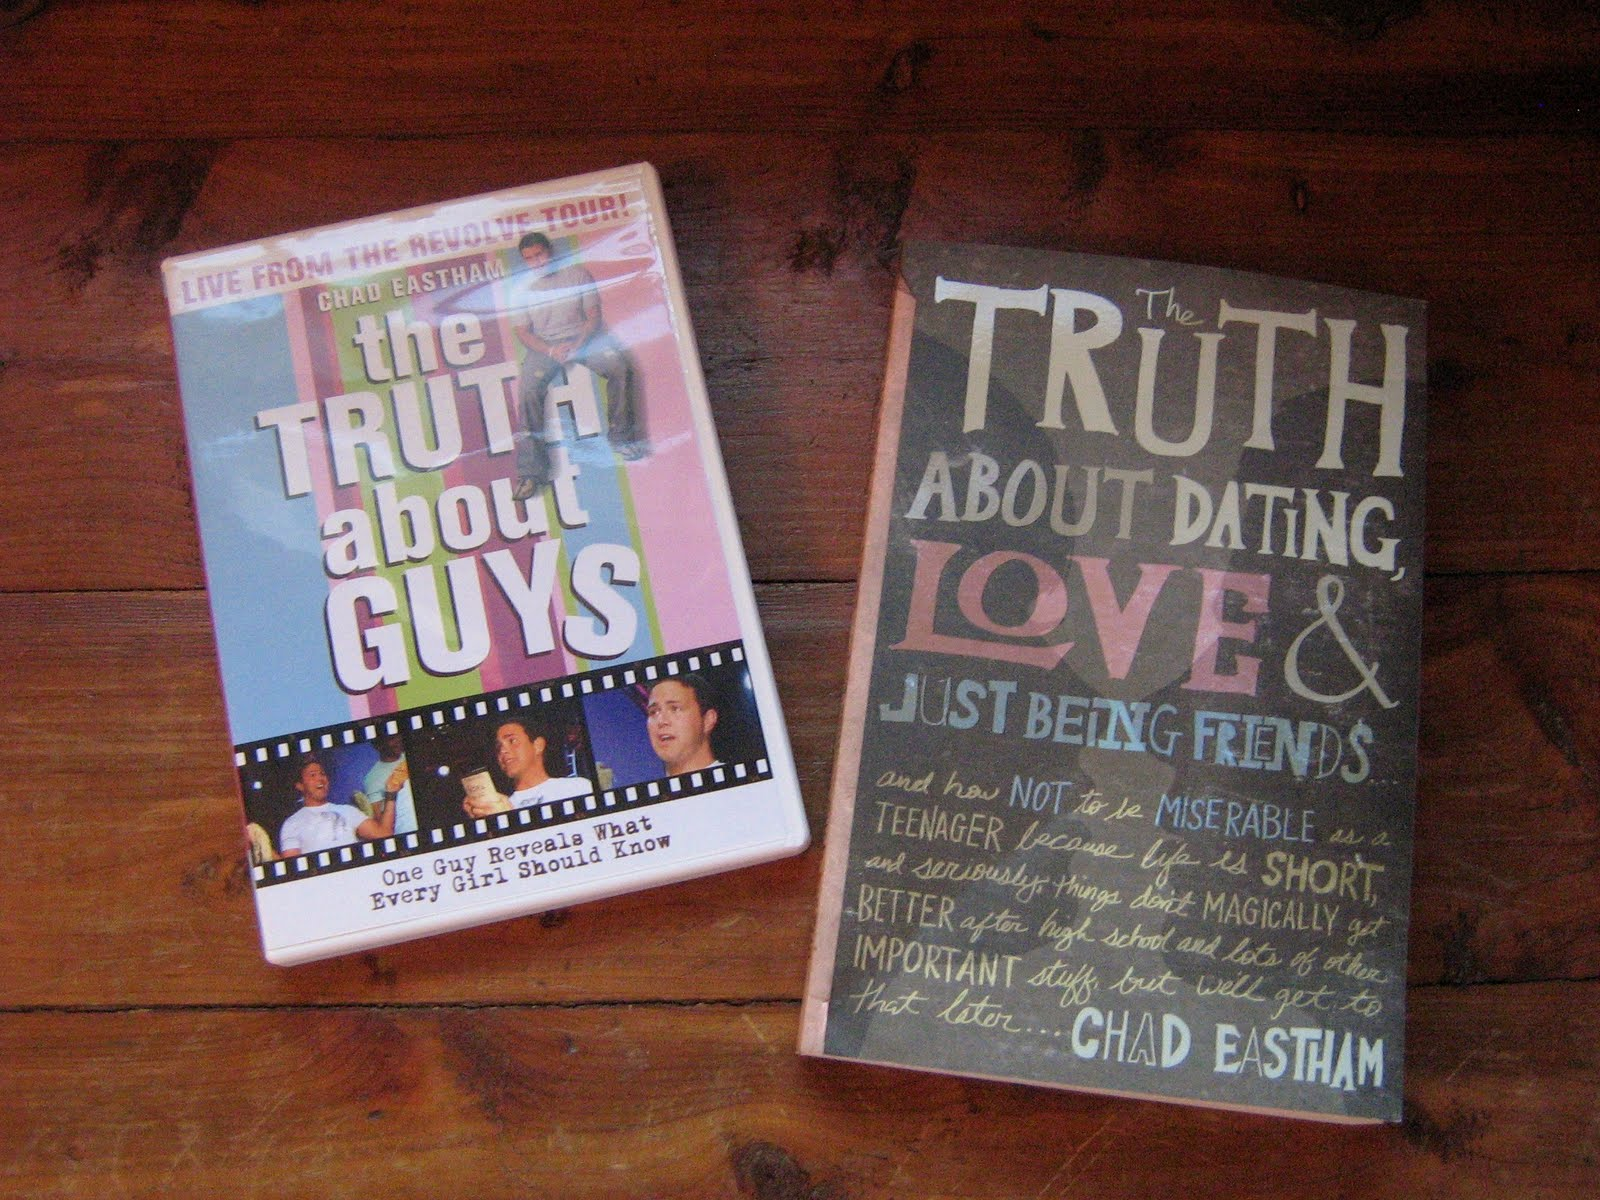 Sew Technicolor: The Truth about Dating, Love, and Just Being